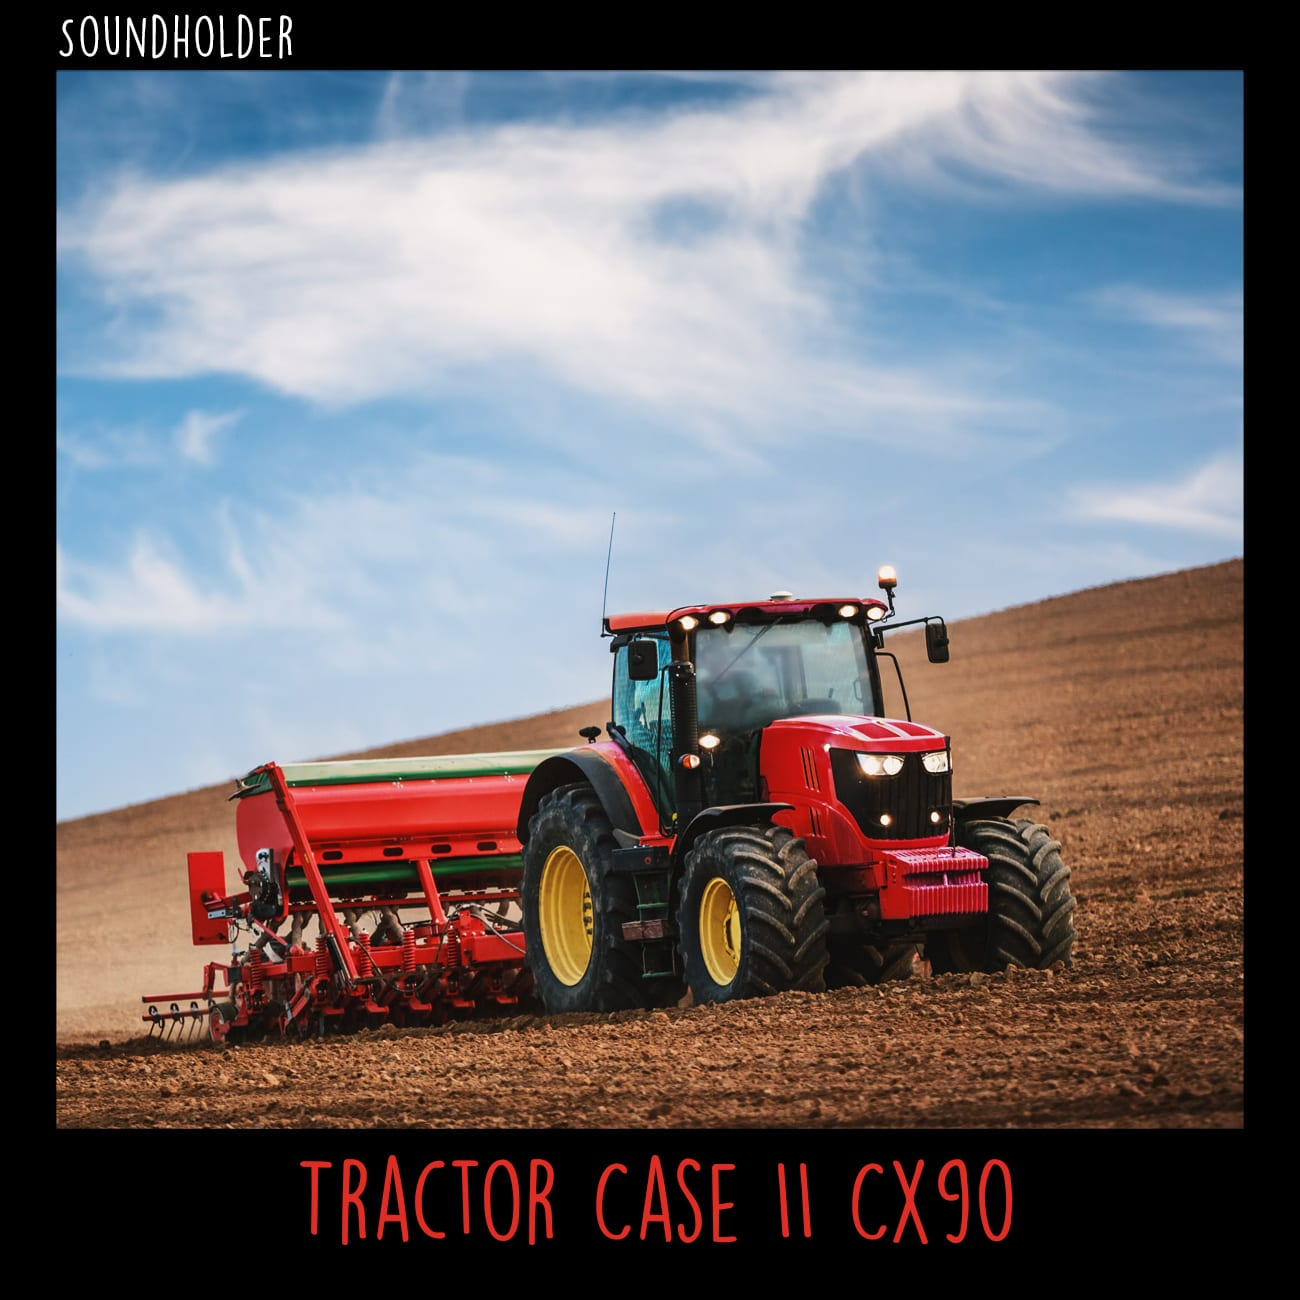 tractor-case-ii-asfx